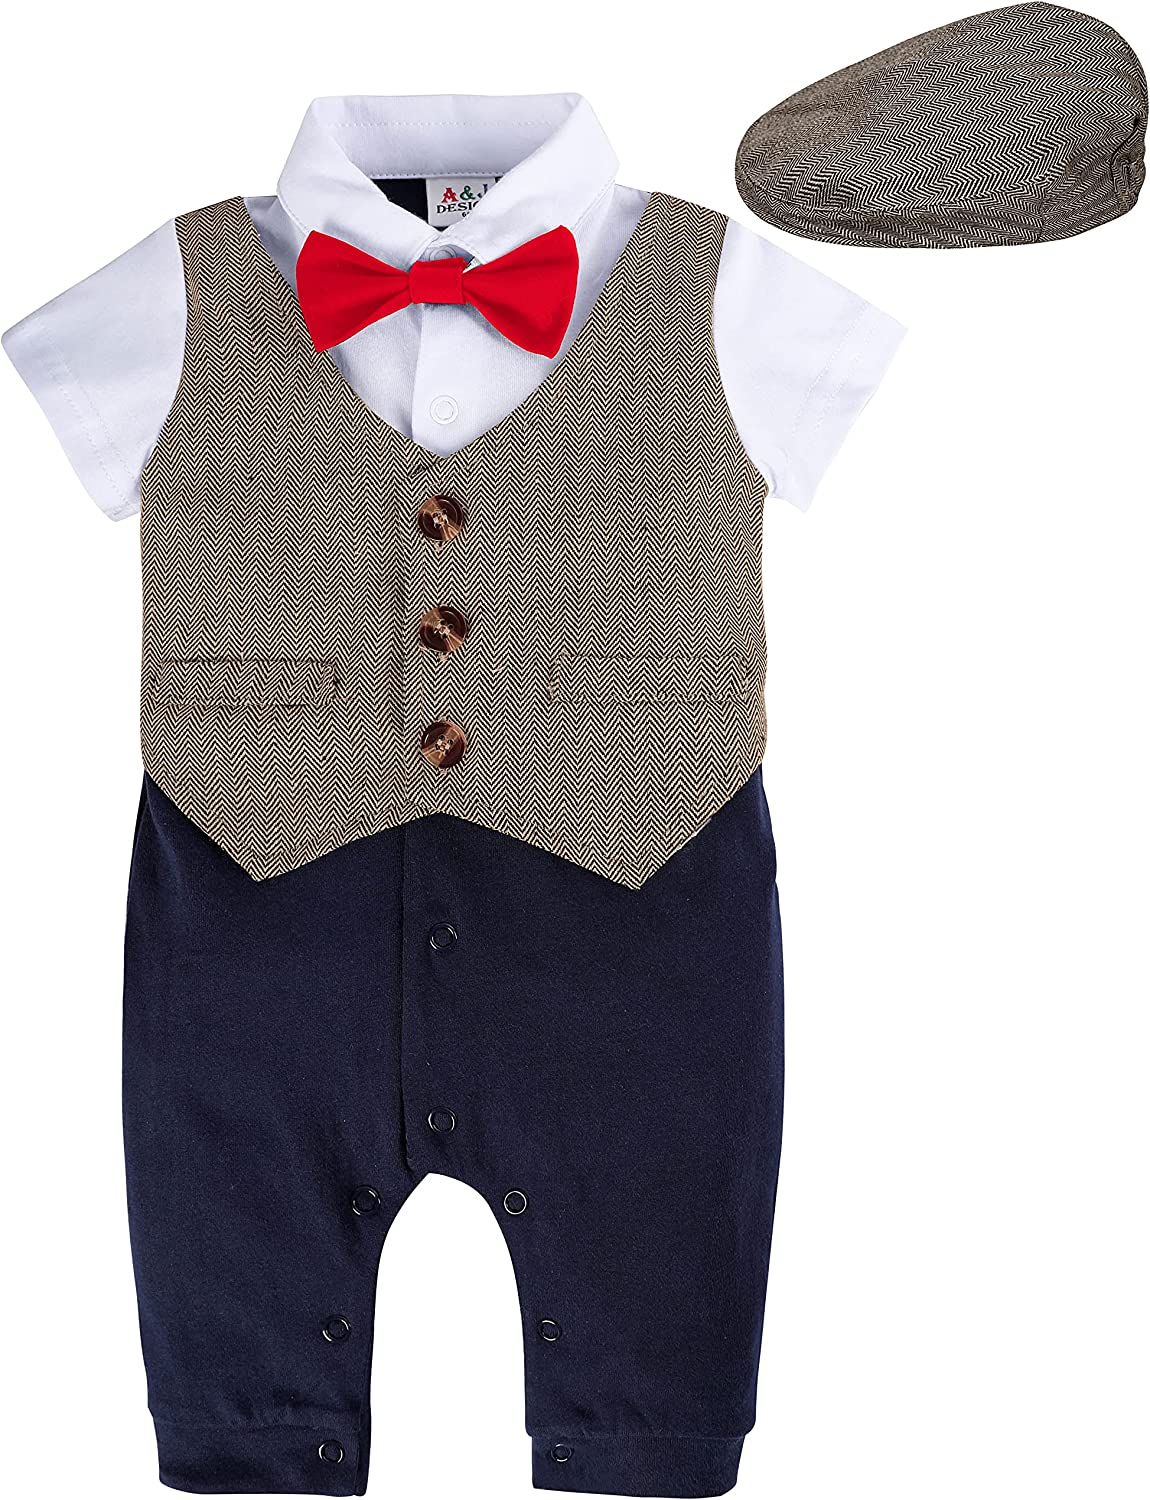 A&J DESIGN Baby Newborn Outfits for Boys, 2Pcs Baby Gentleman Romper & Hat